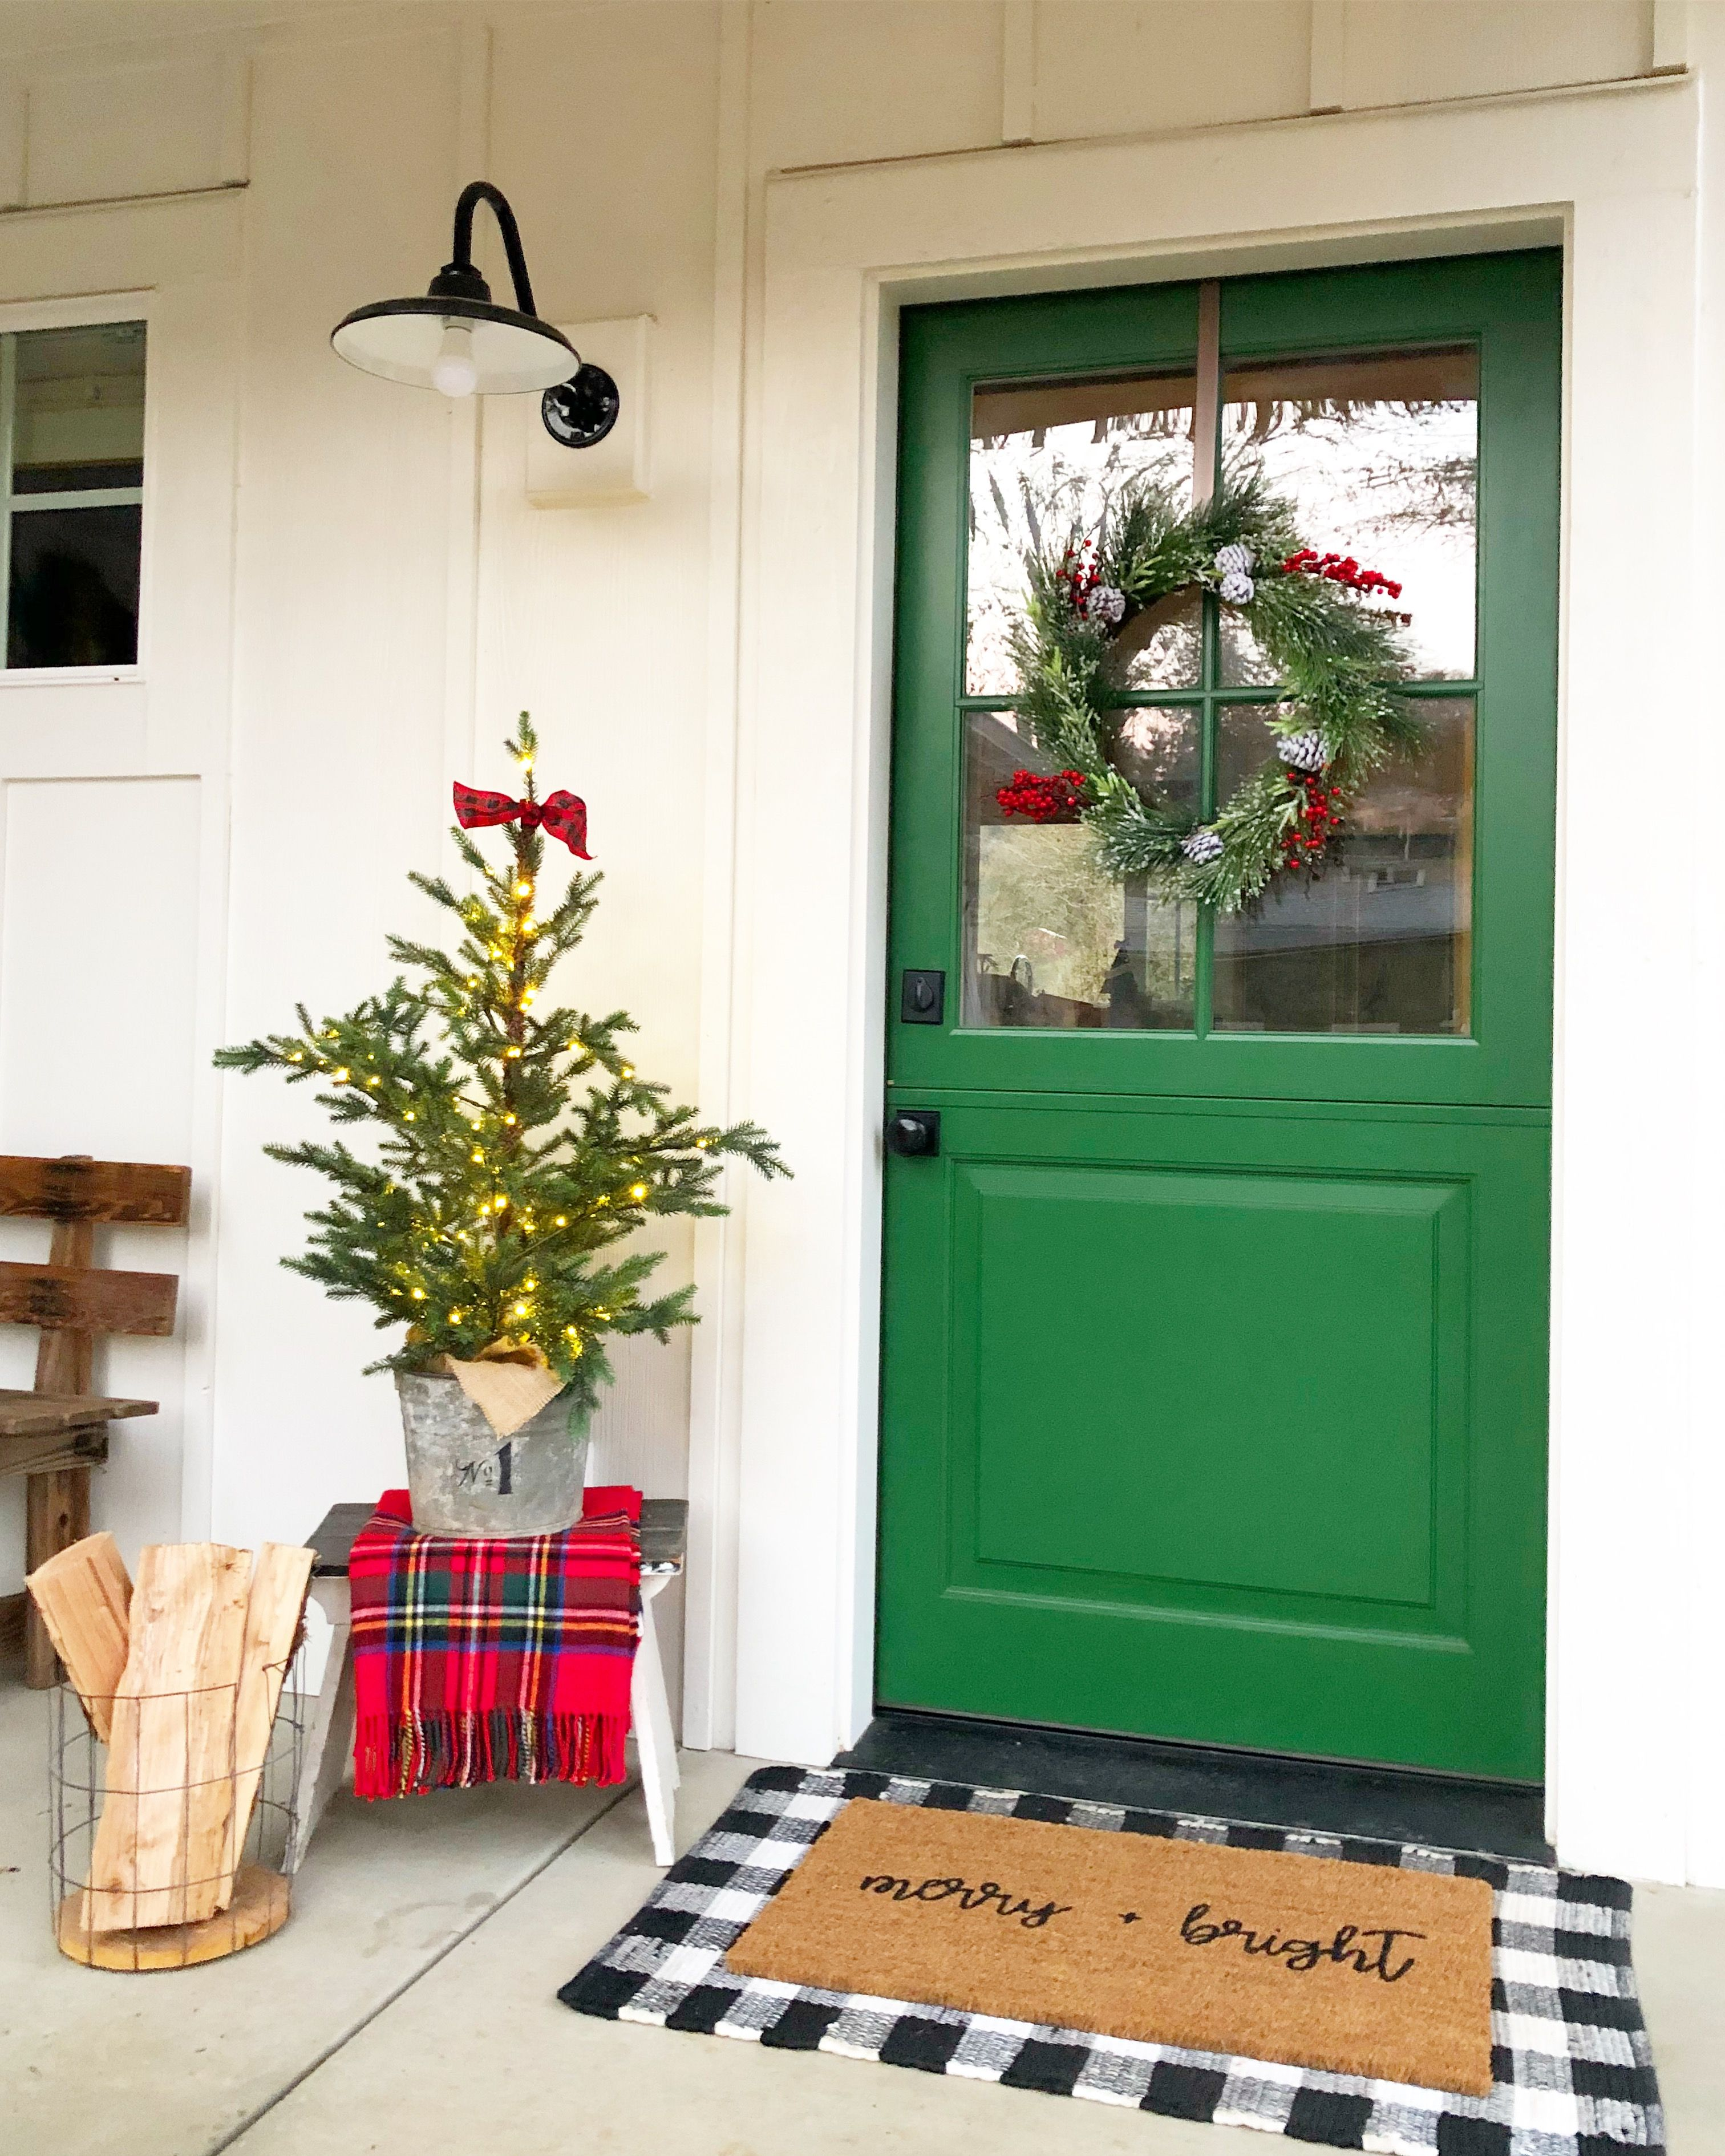 A bright green Dutch door is all the needed at